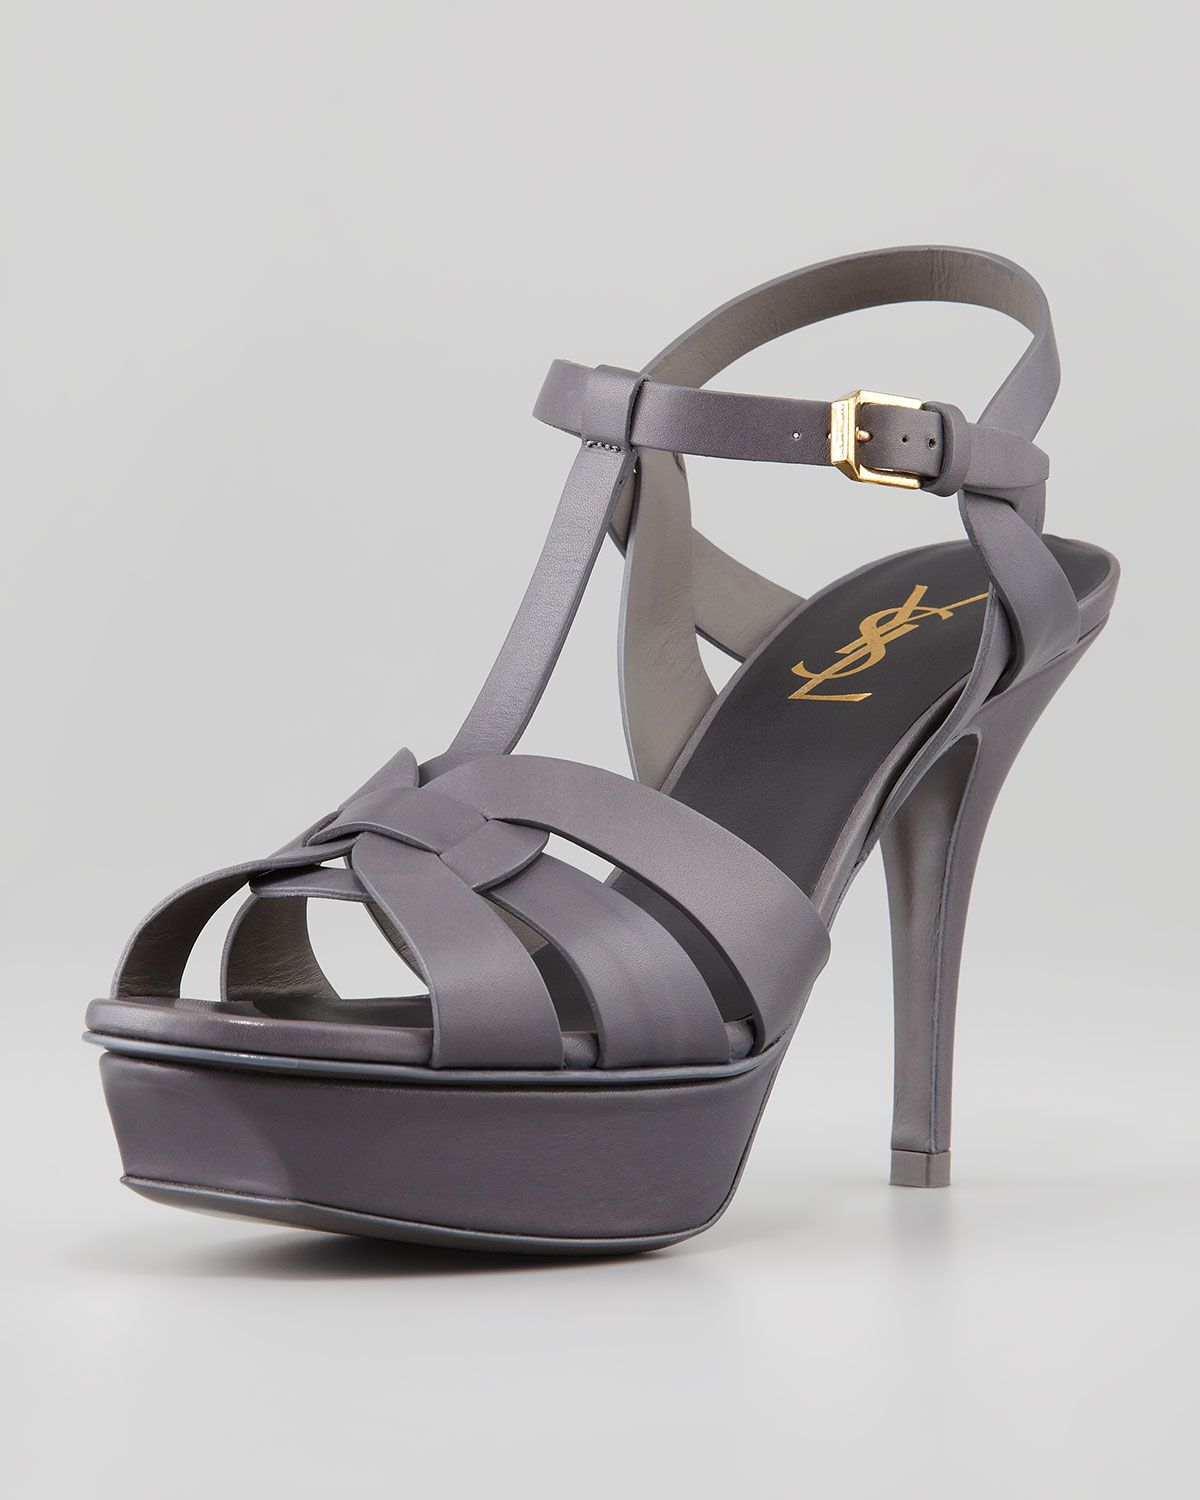 a72189365efa Yves Saint Laurent Tribute Low-Heel Platform Sandal